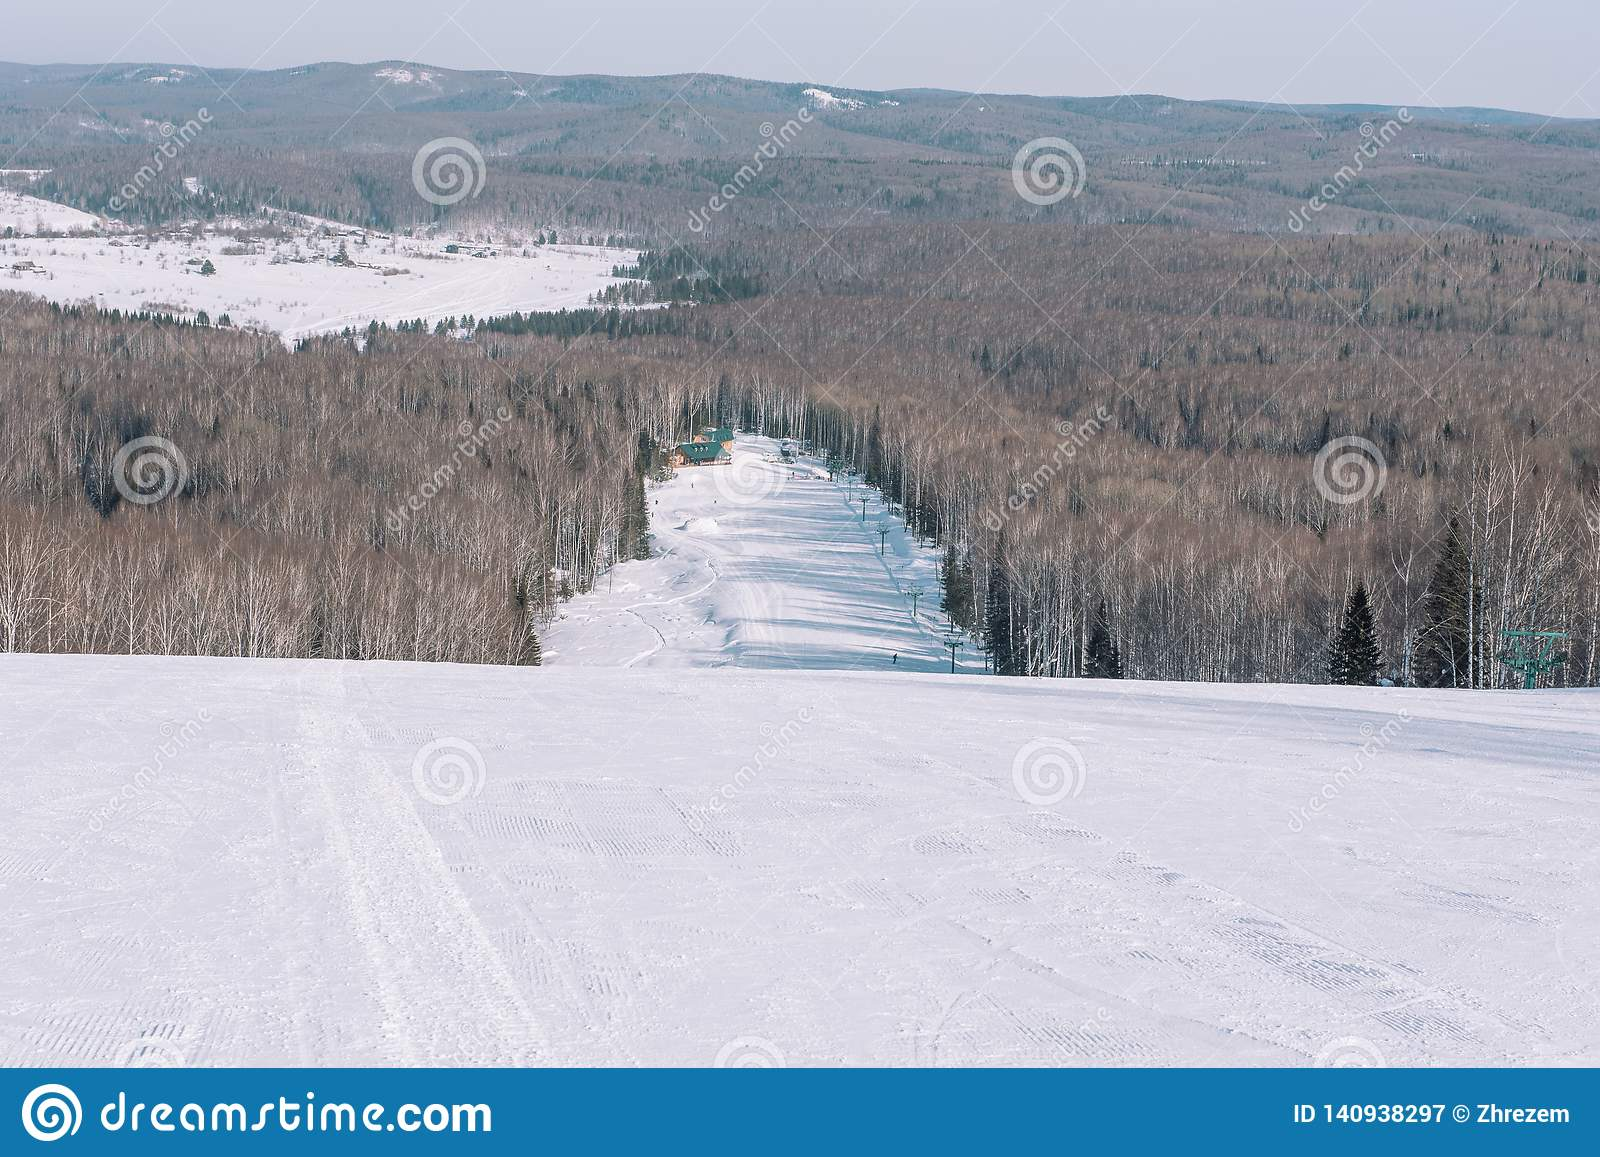 Winter mountain view from above. View down from the mountain in winter. Winter landscape. Winter in Siberia